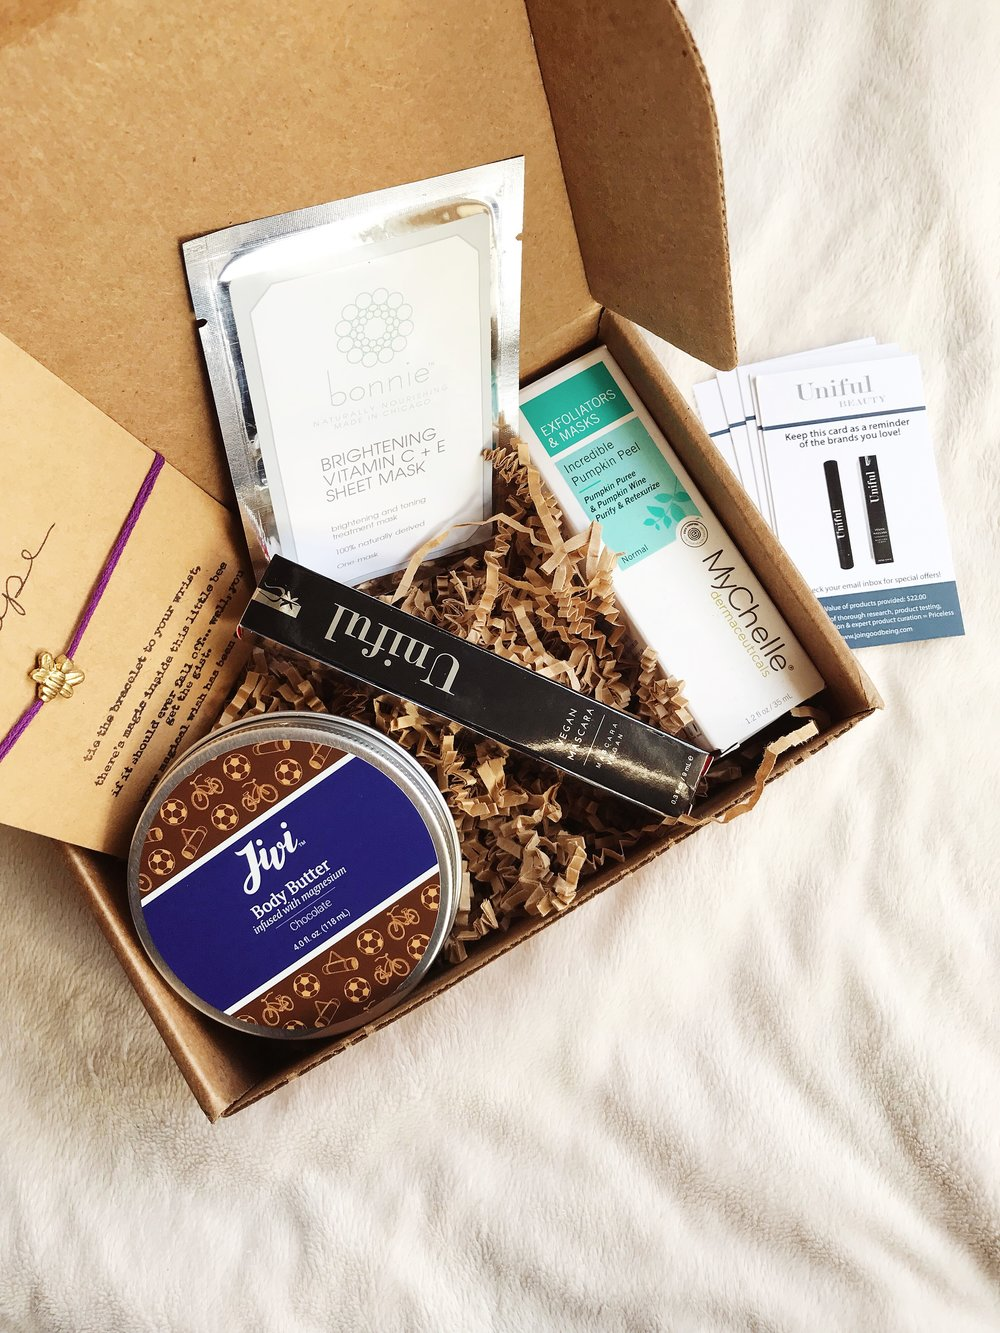 December Goodbeing Beauty Subscription Box | Mallorie Owens